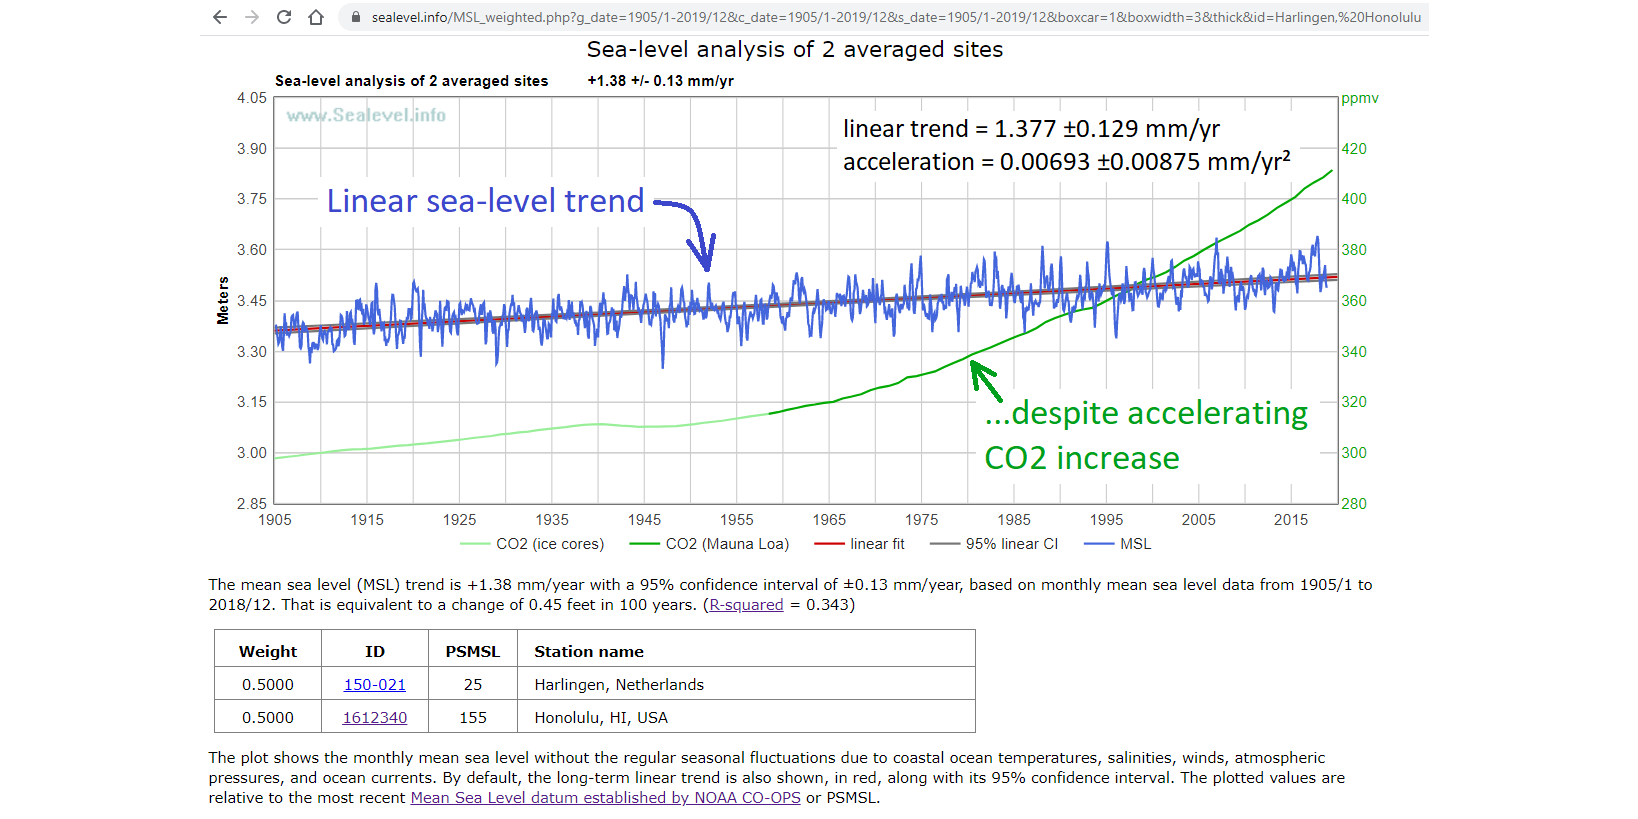 sea-level analysis of the average of two very high-quality, long measurement records, on opposite sides of the Earth